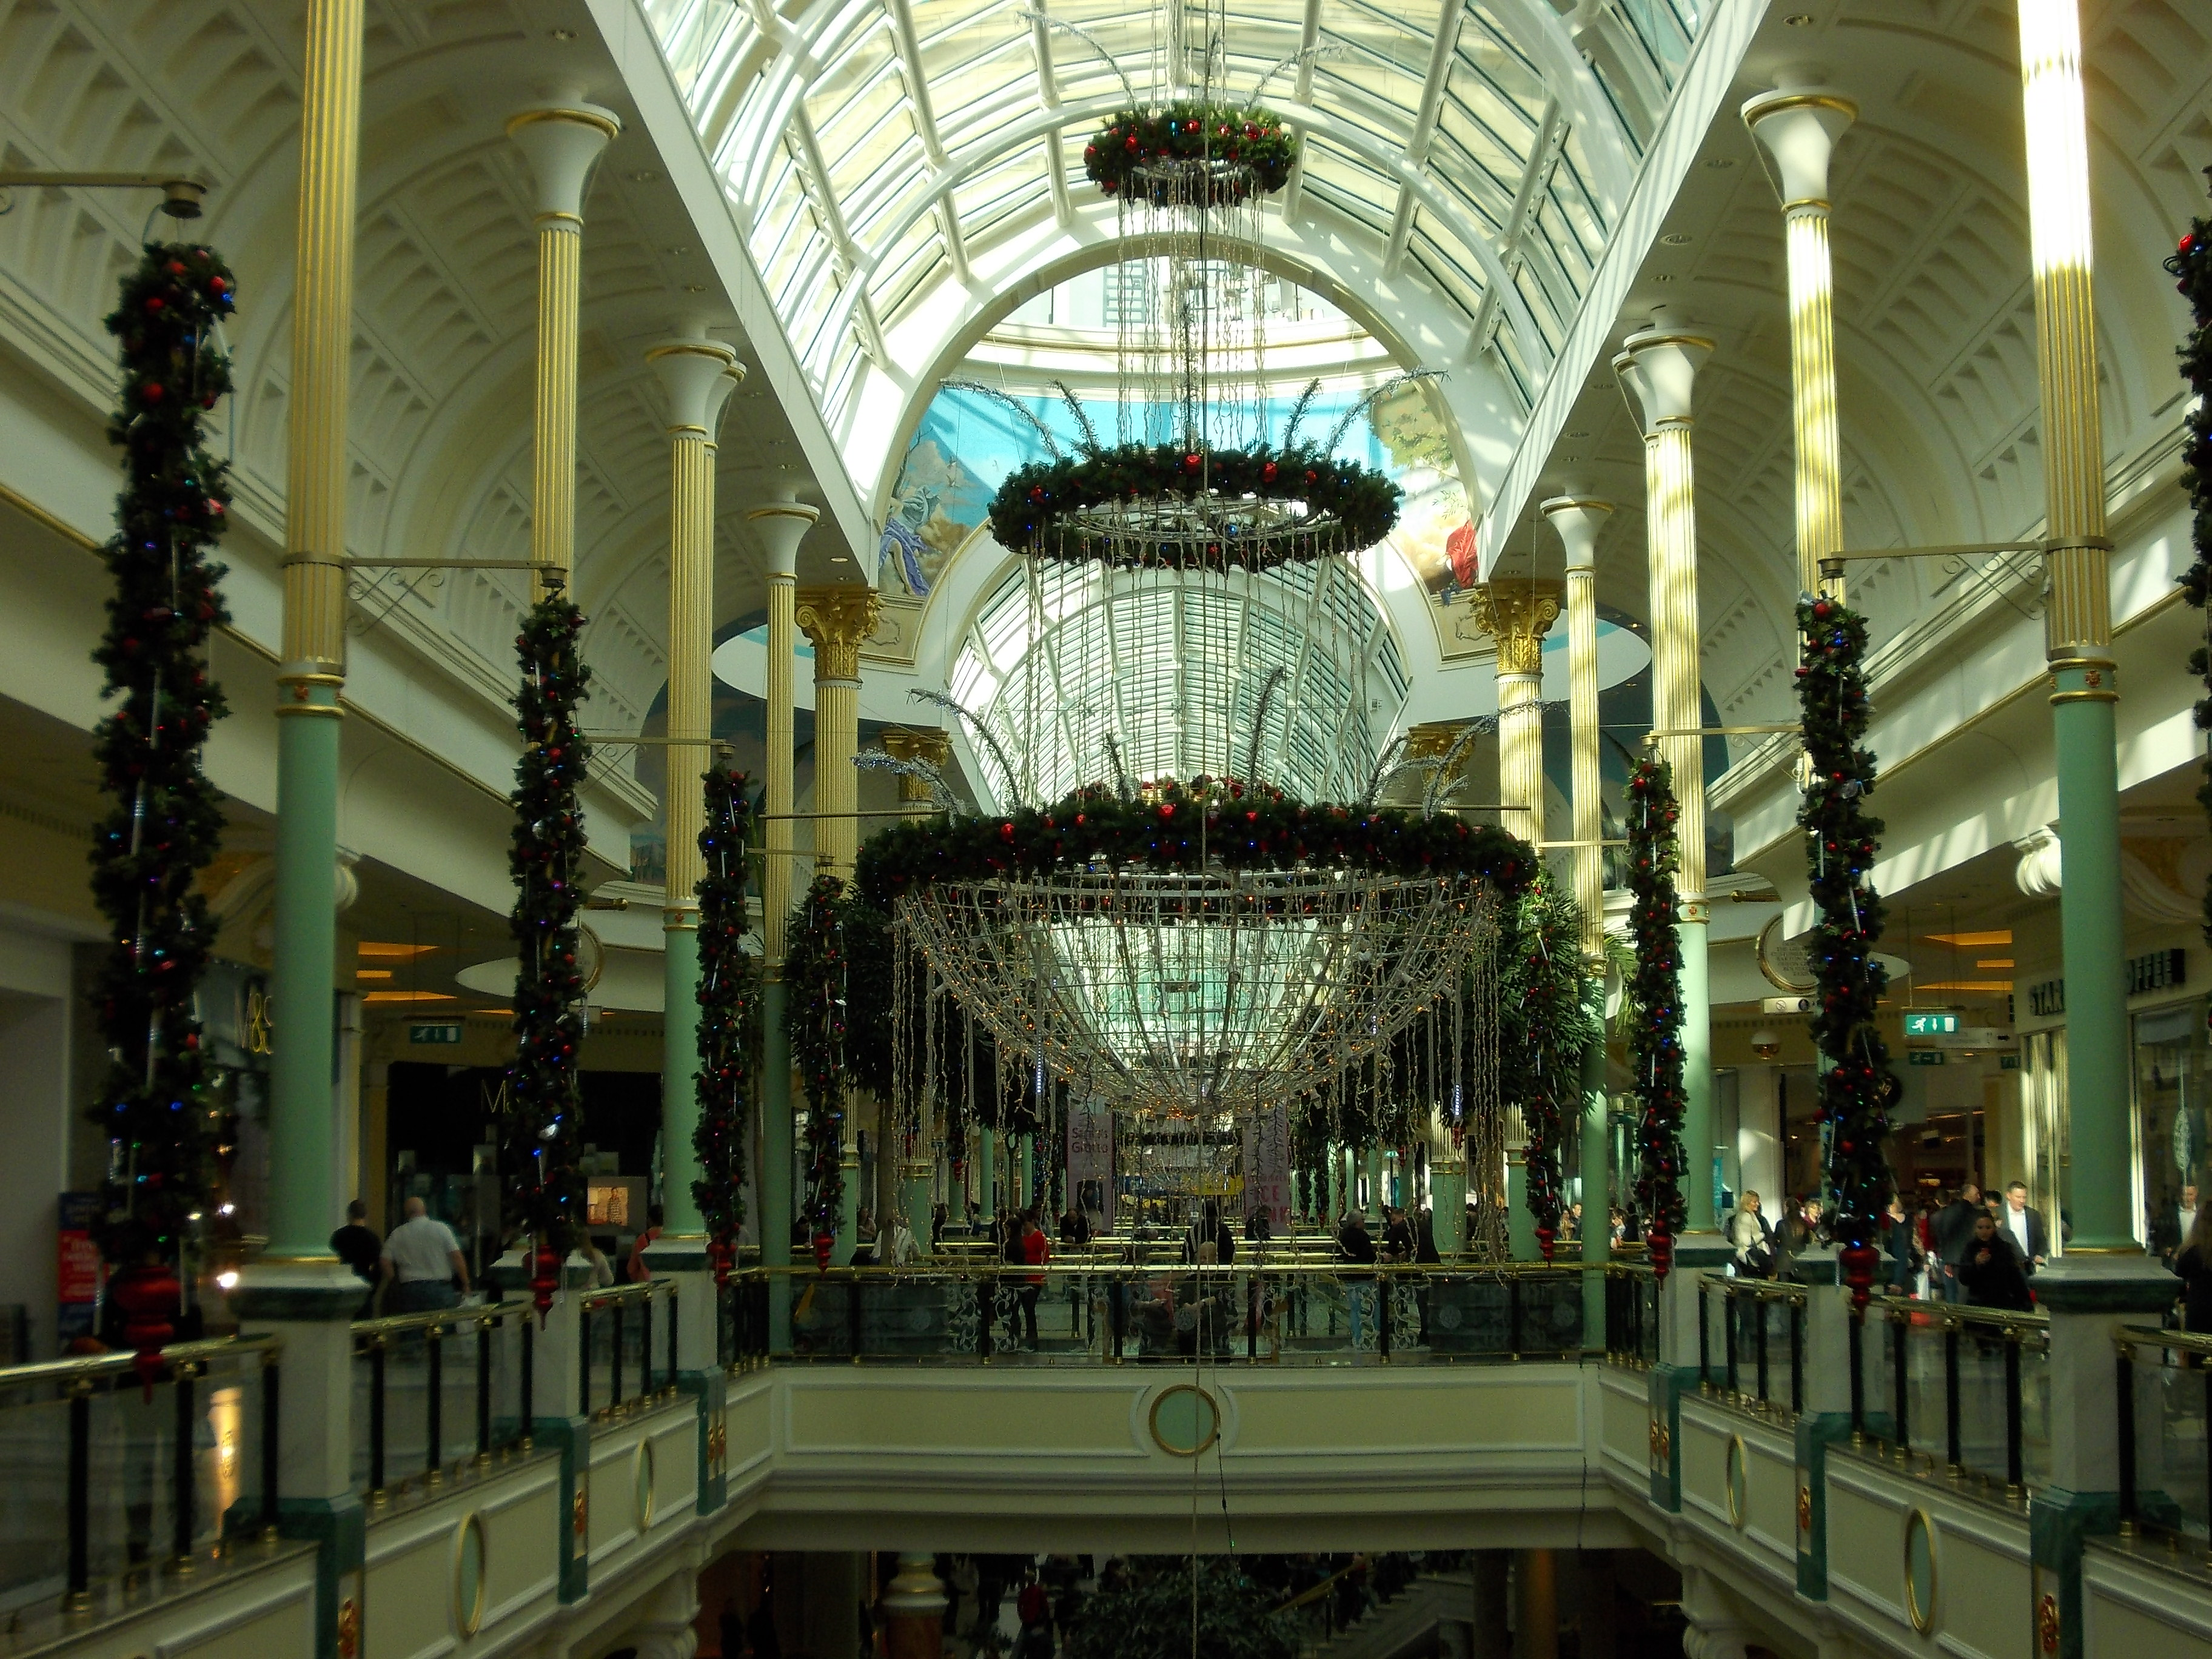 Cake Decorating Trafford Centre : Trafford Centre @ Christmas 2?. GHOSTLY TOM S TRAVEL BLOG?..